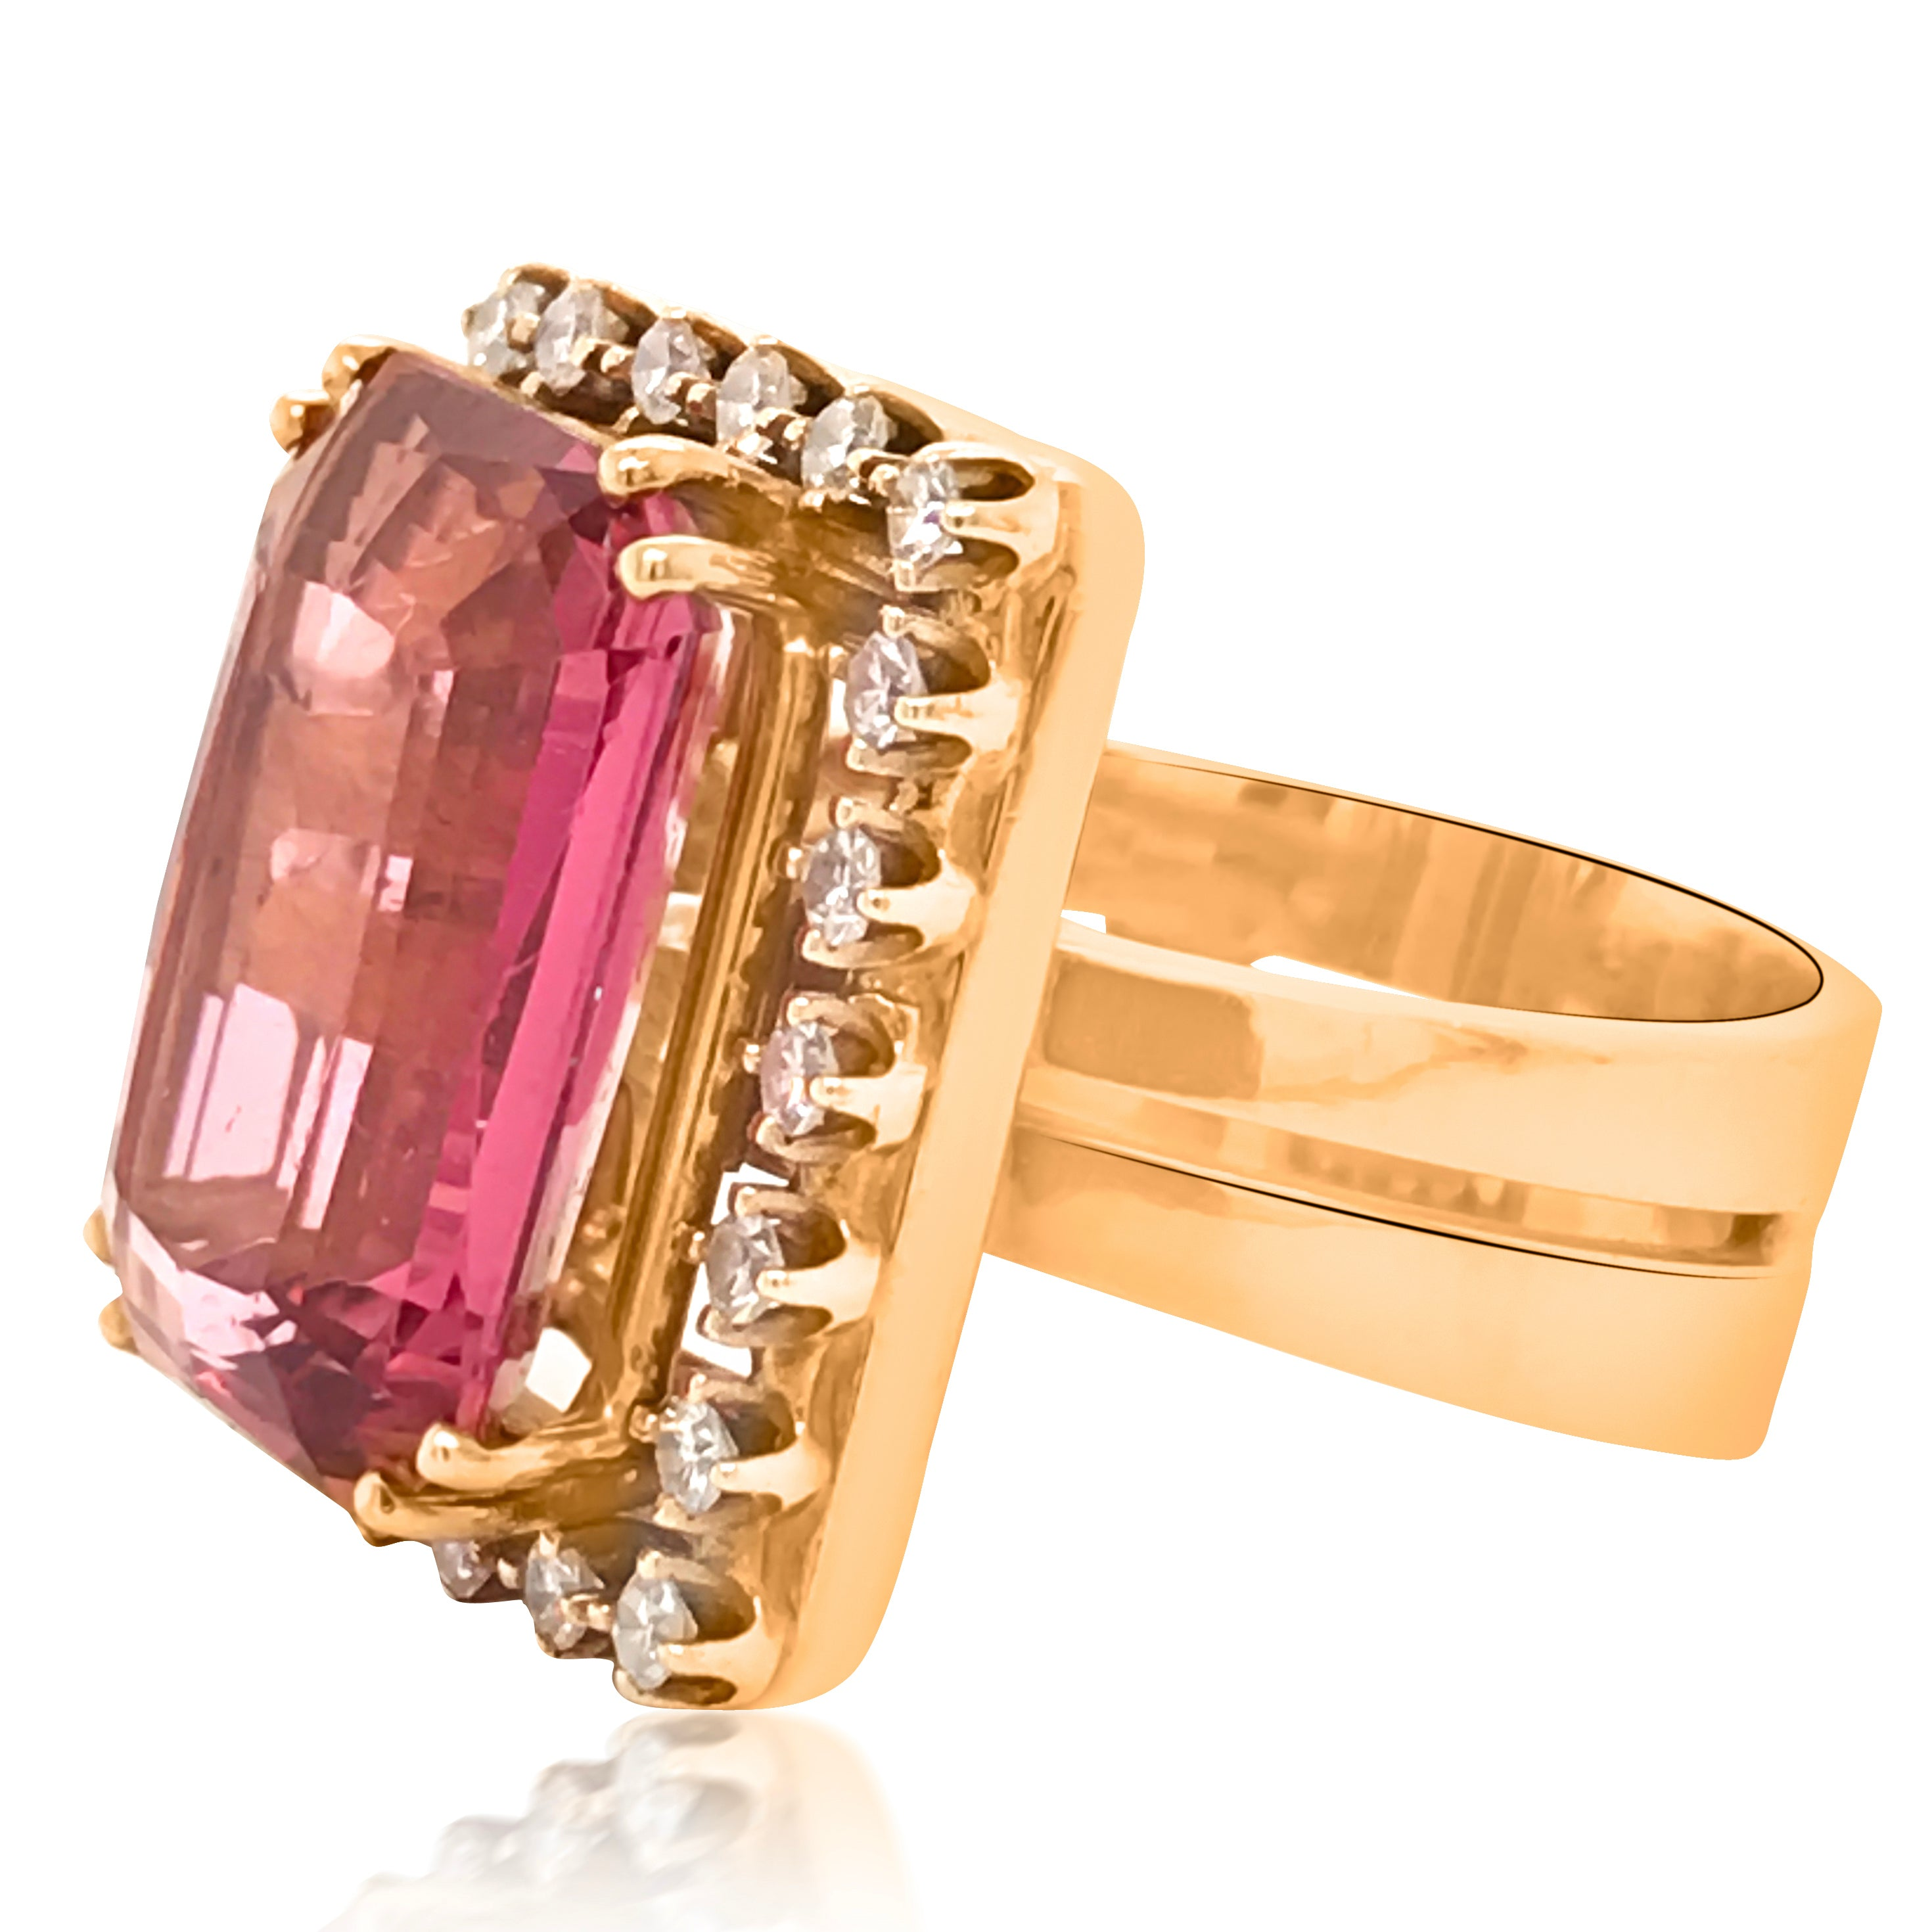 18K Gold Tourmaline Diamond Ring - Lueur Jewelry